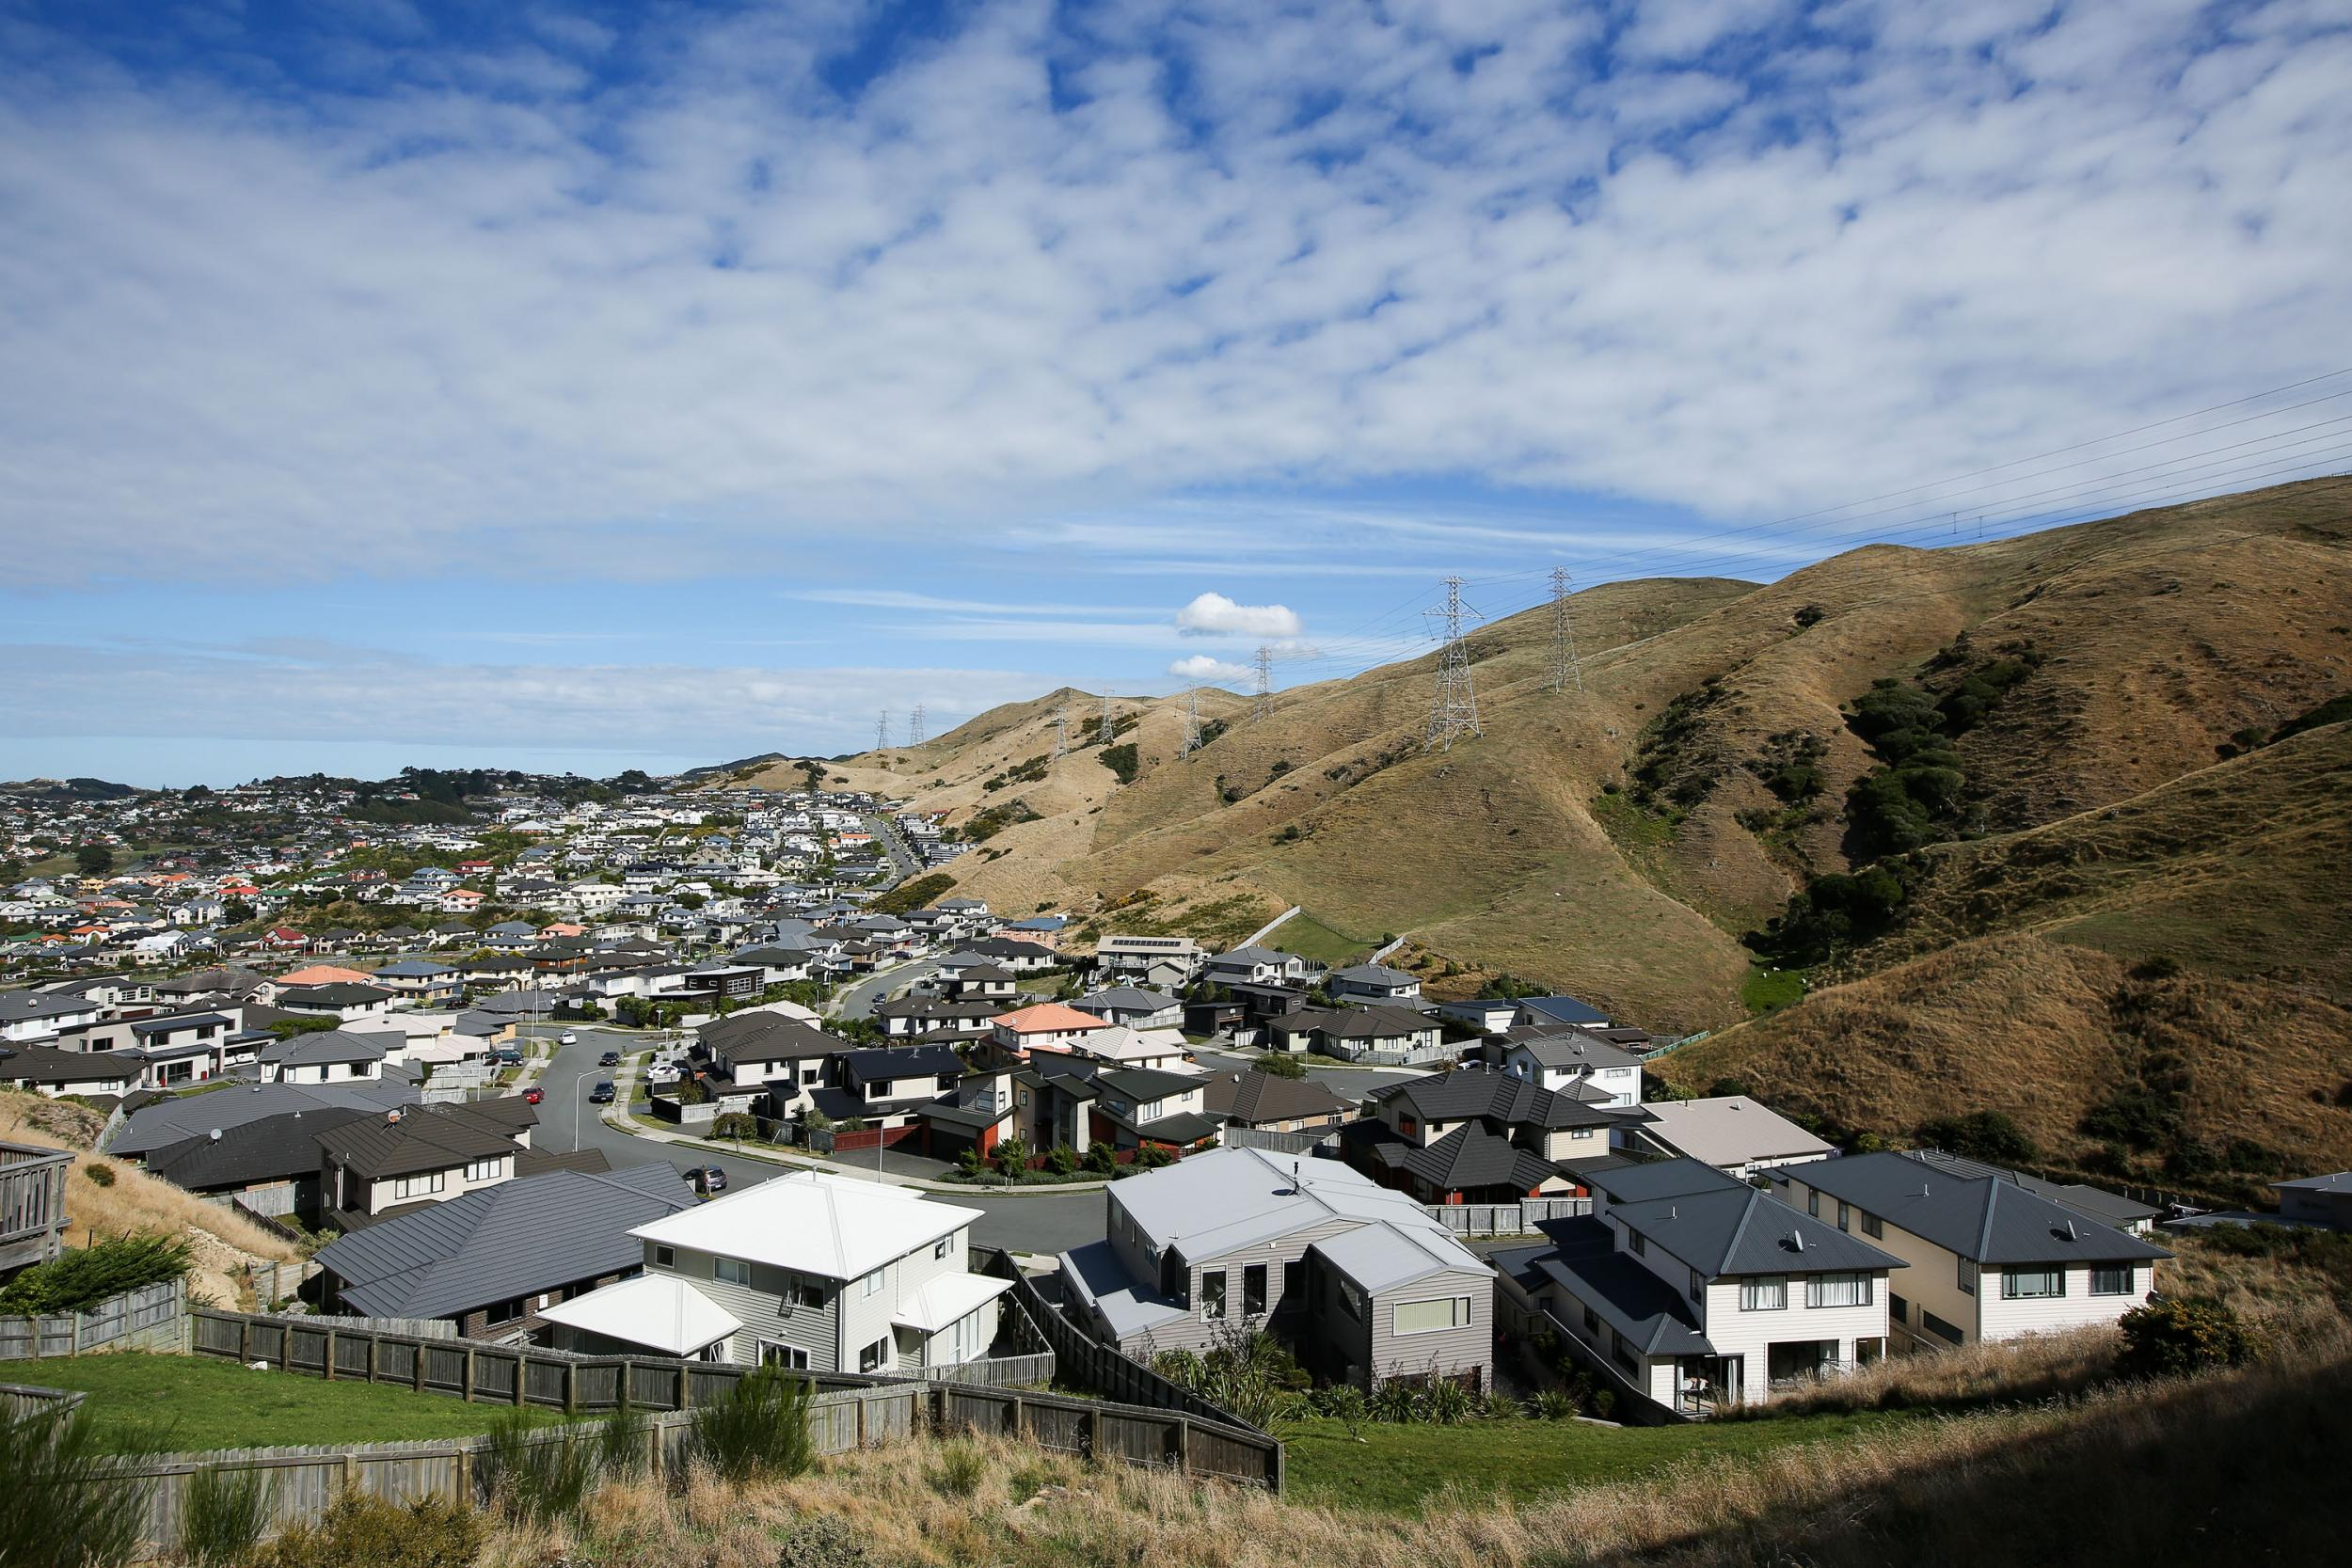 New Zealand bans foreigners from buying homes as housing